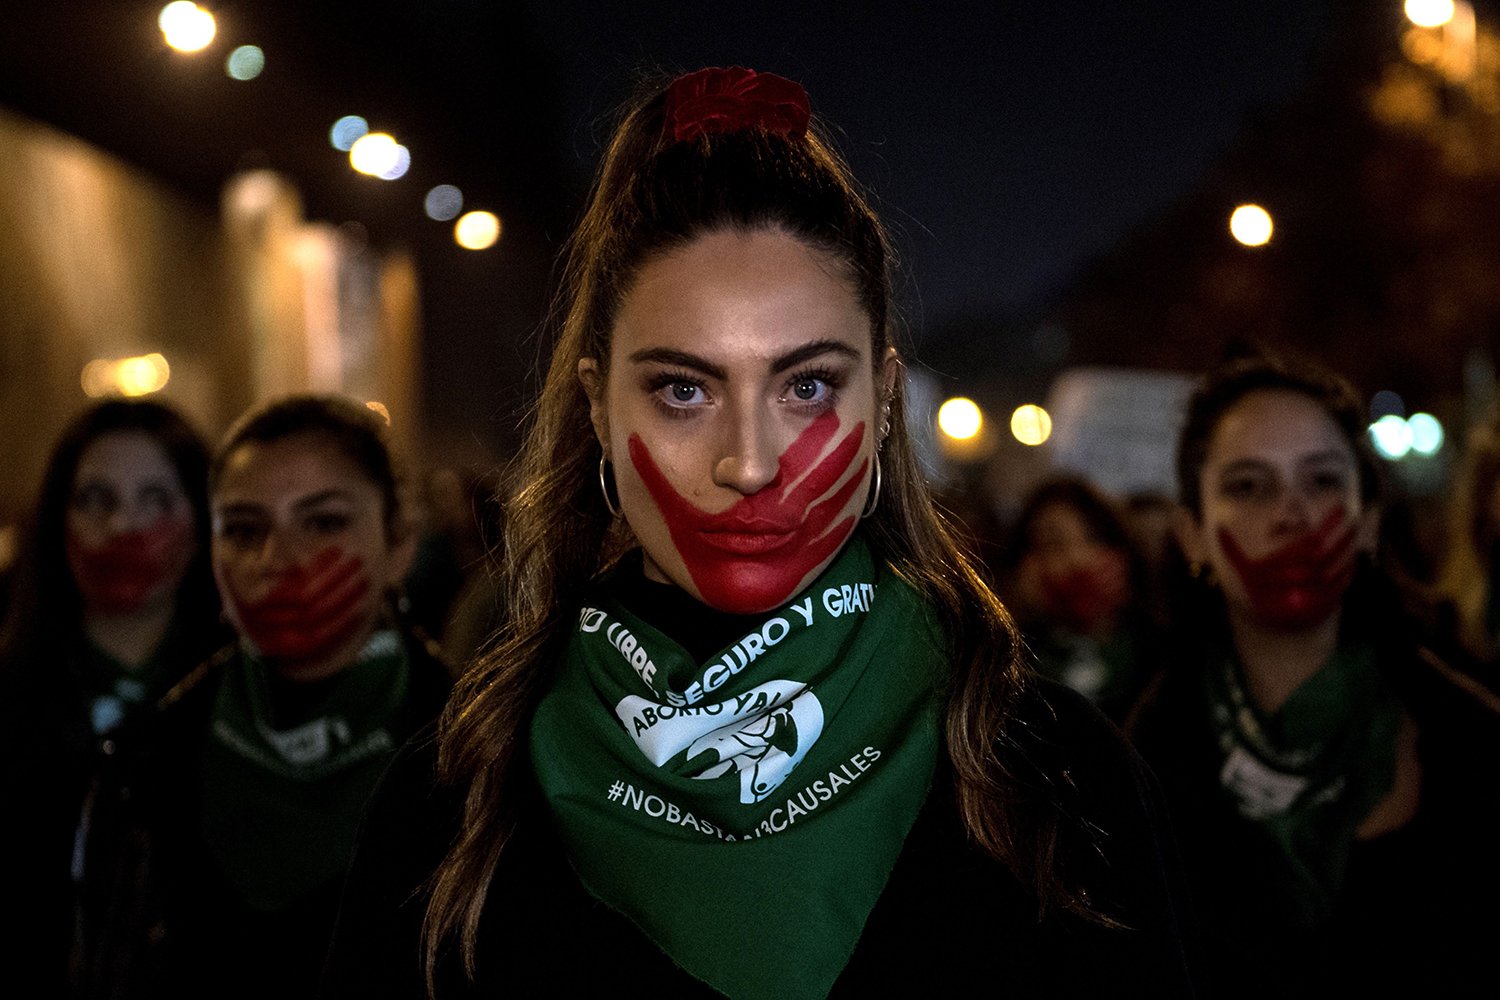 Activists march during a demonstration in favor of free abortion in Santiago, Chile, on July 25. MARTIN BERNETTI/AFP/Getty Images